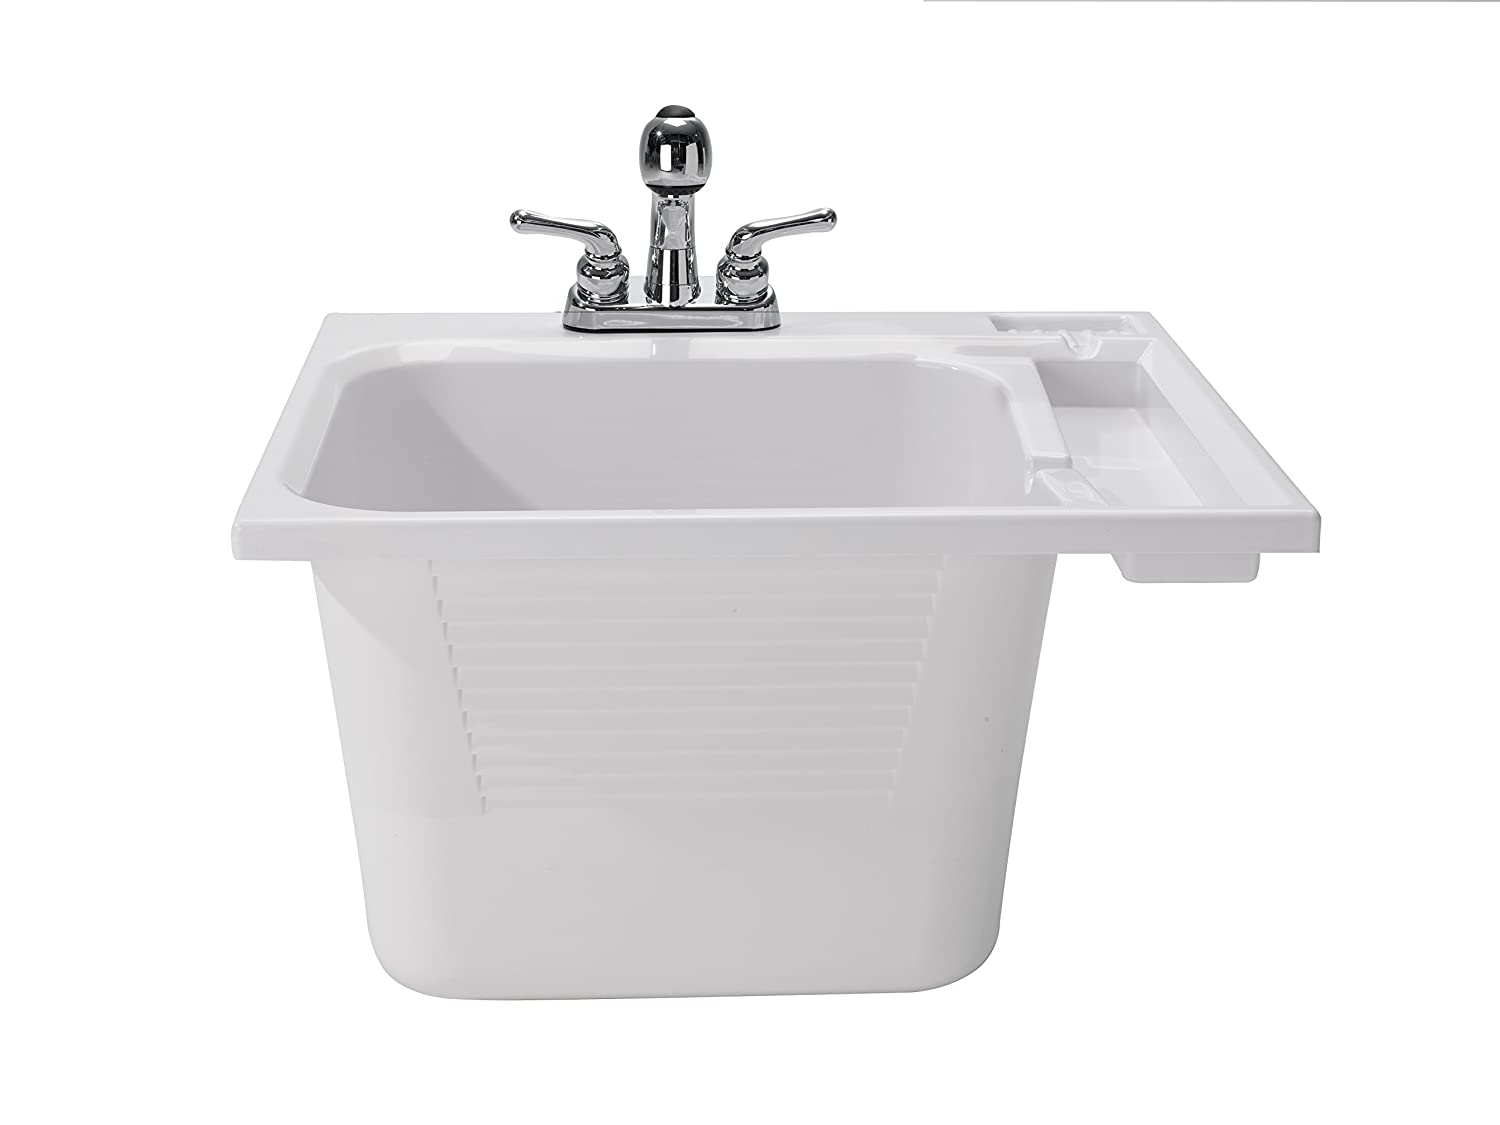 CASHEL Drop-In Sink - Fully Loaded Sink Kit, White, 1970-33-01